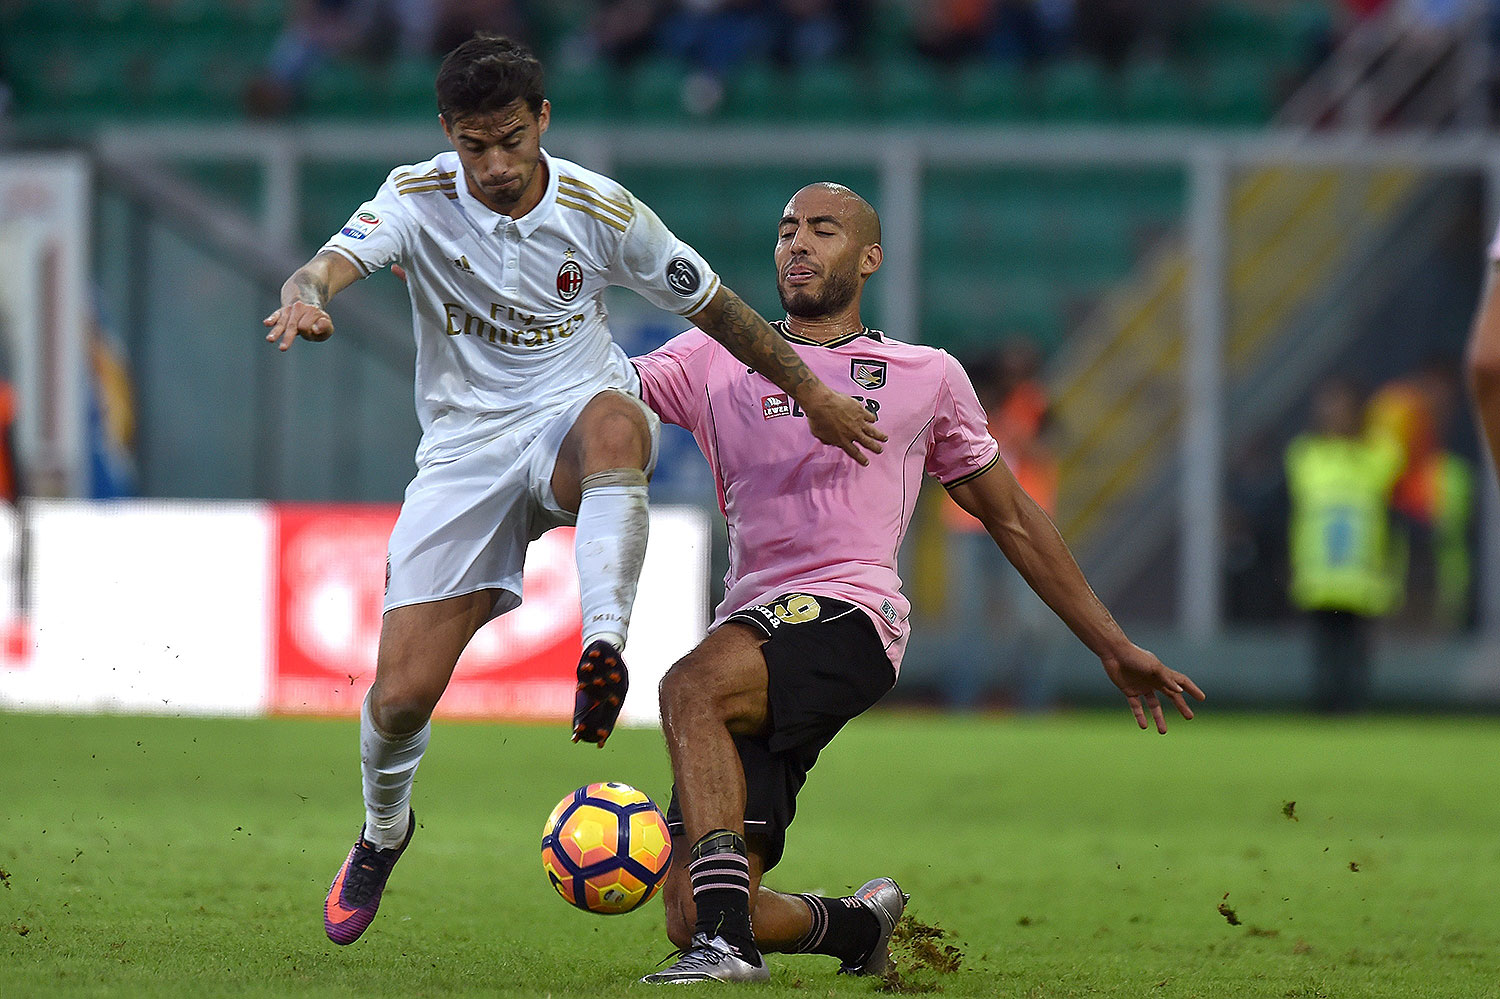 Suso and Haitam Aleesami during Palermo-Milan at Stadio Renzo Barbera on the 6th of November 2016. (Photo by Tullio M. Puglia/Getty Images)